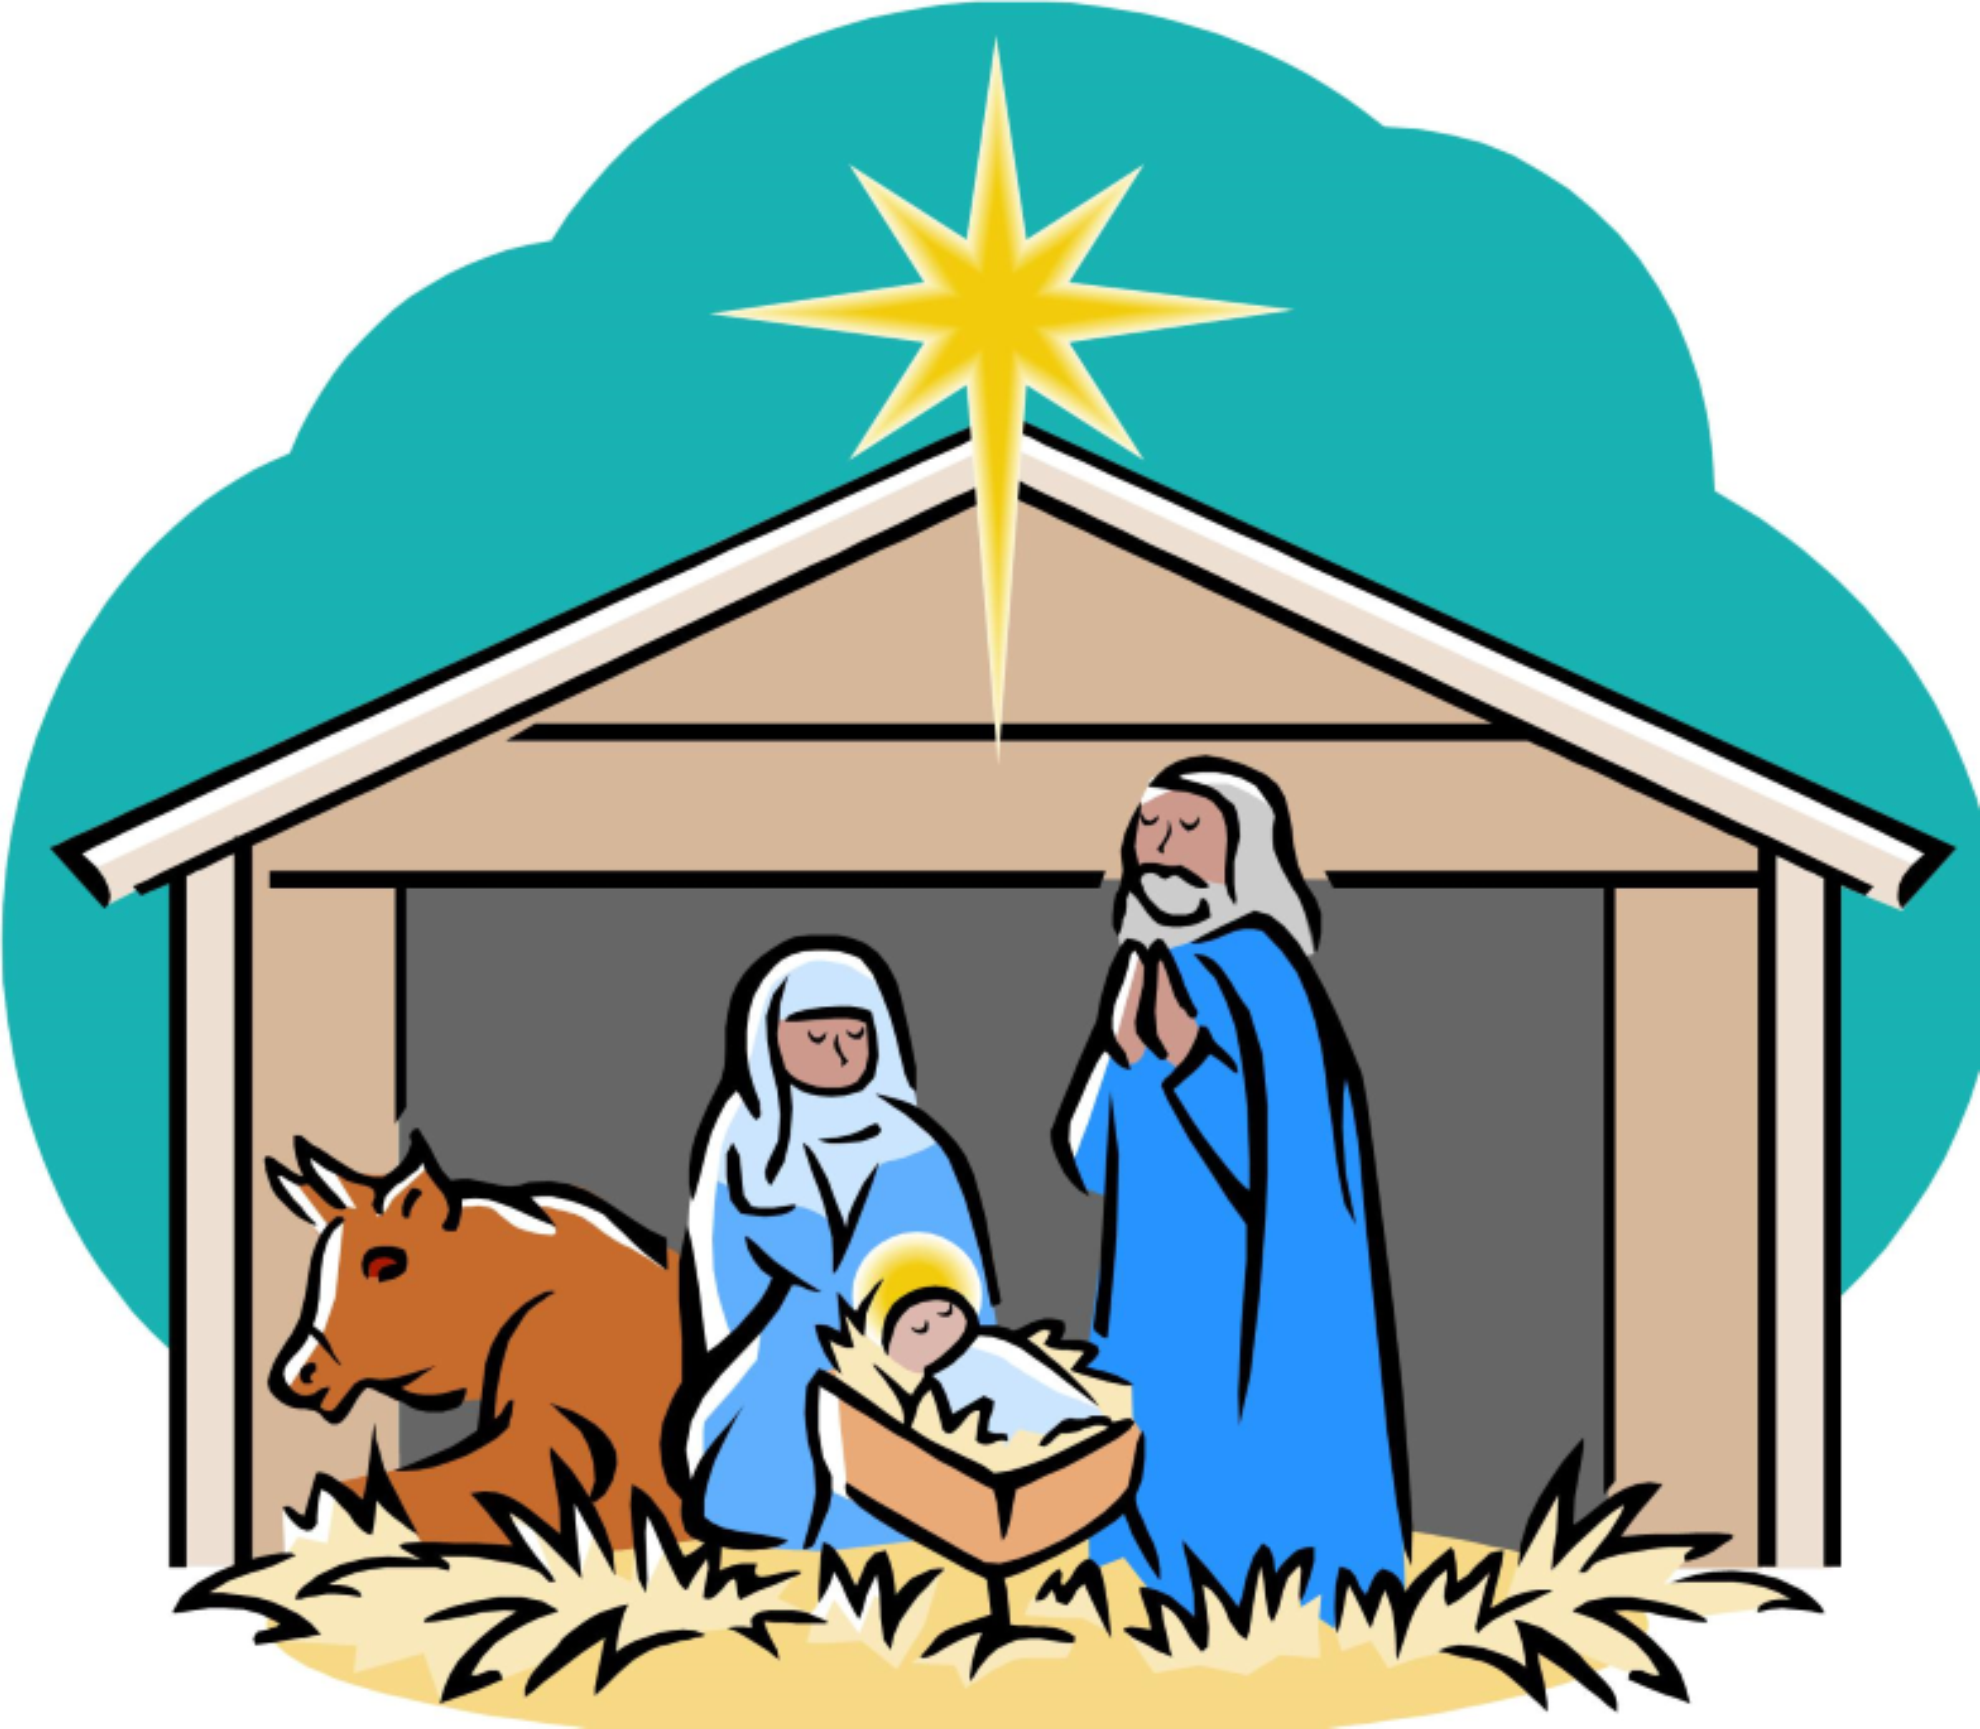 Merry Christmas Nativity Clipart | Free download on ClipArtMag